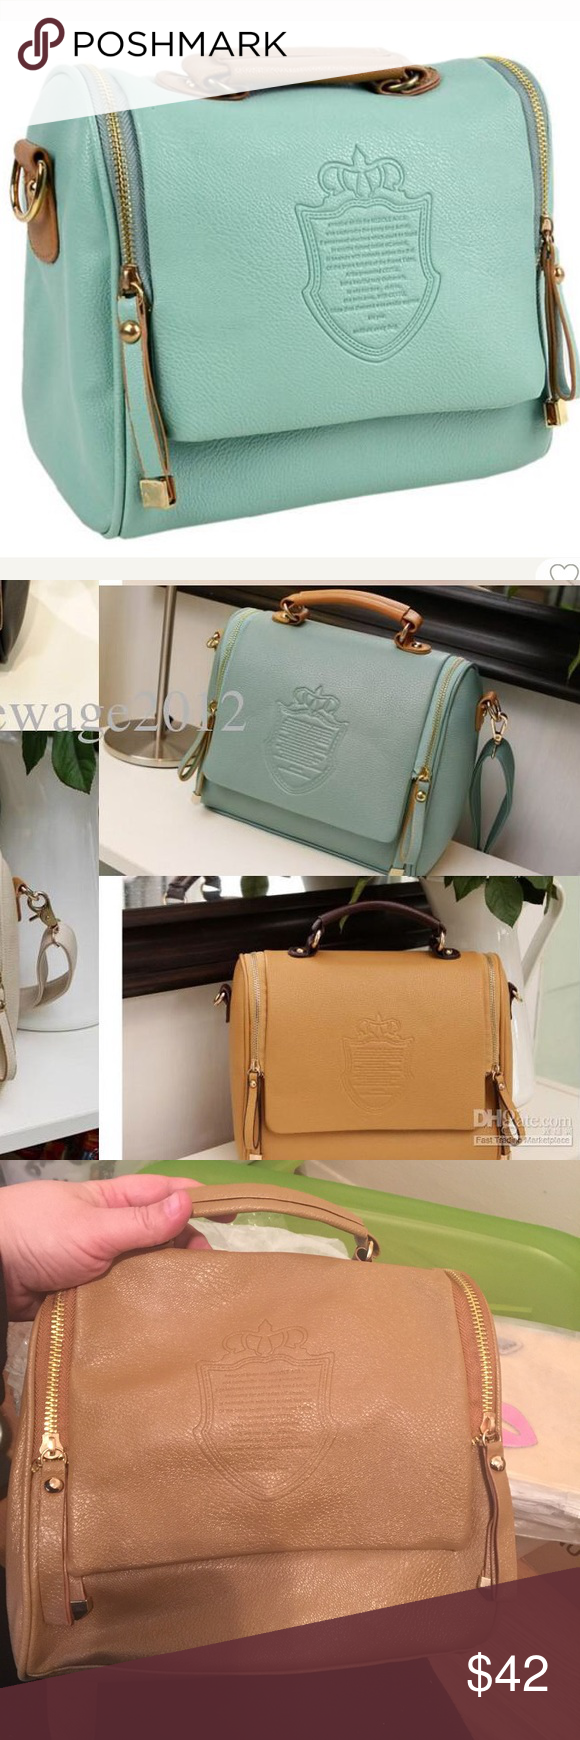 1f53dc4f9957 PU leather cross body bag Bags are size medium top handle cross body bags  coming with adjustable strap in a plastic bag for easier shipping.